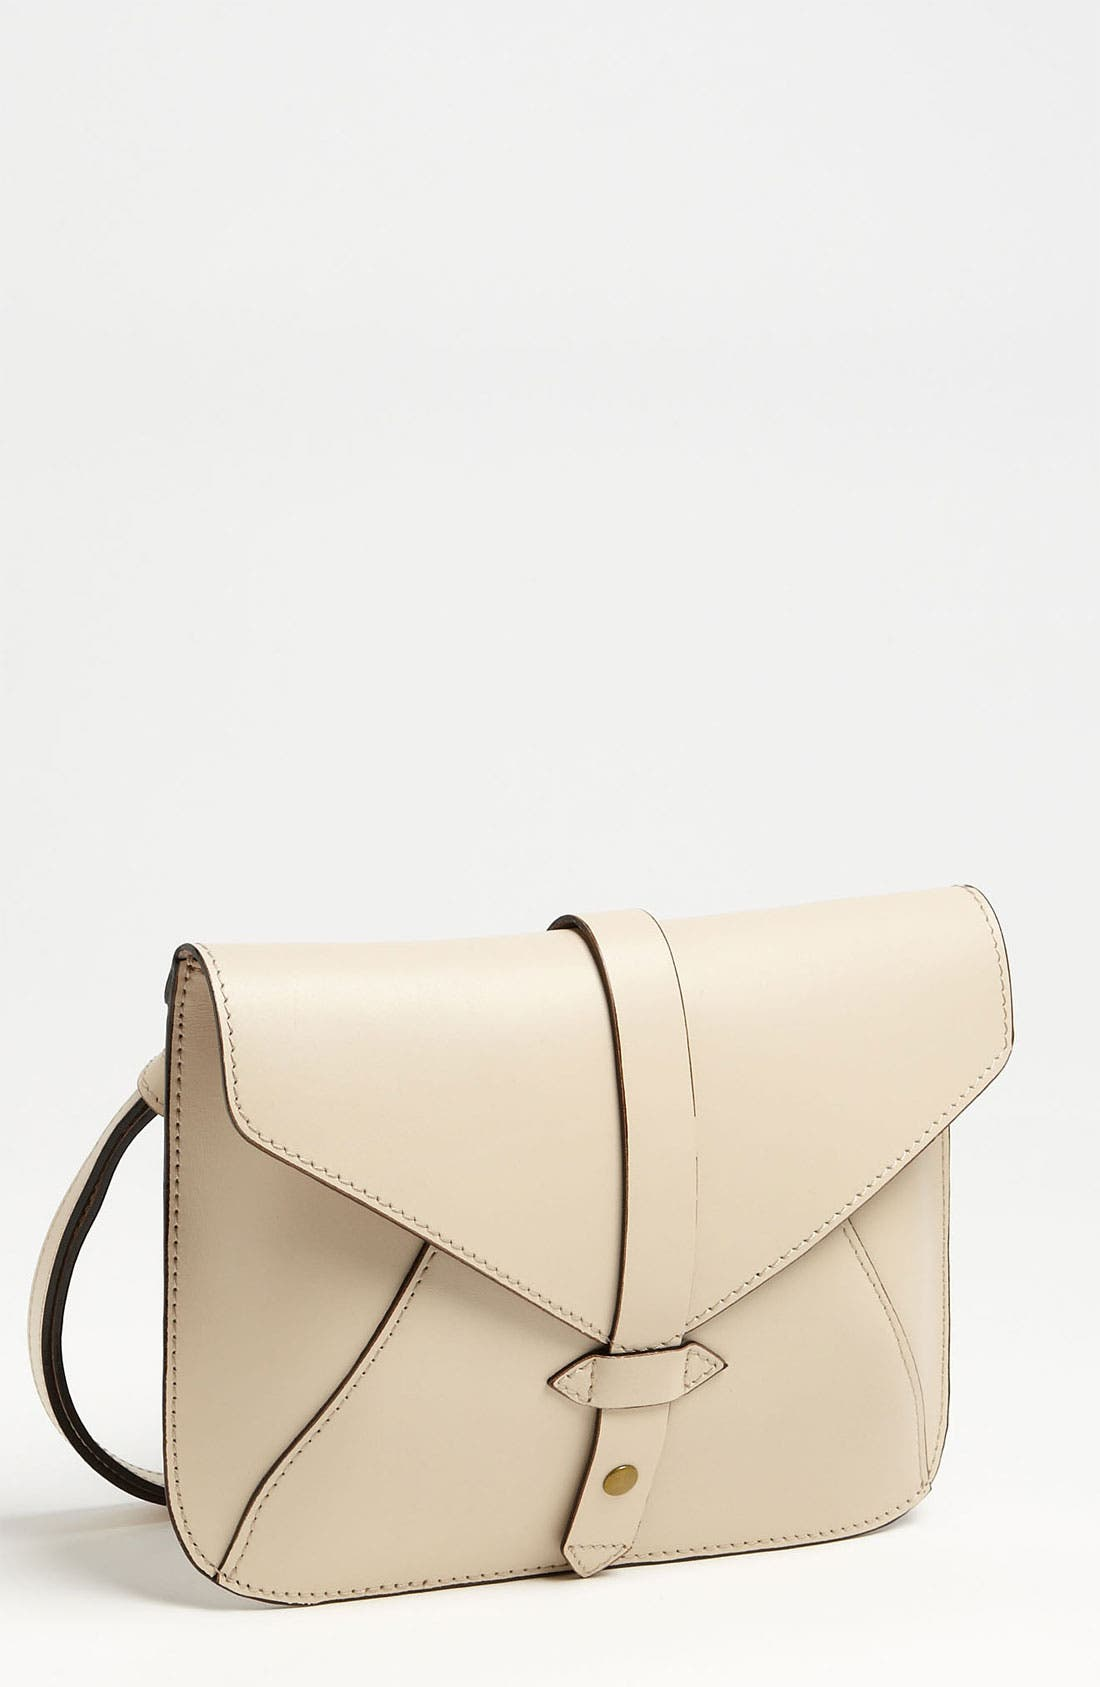 Main Image - IIIBeCa by Joy Gryson 'Church Street' Envelope Crossbody Bag